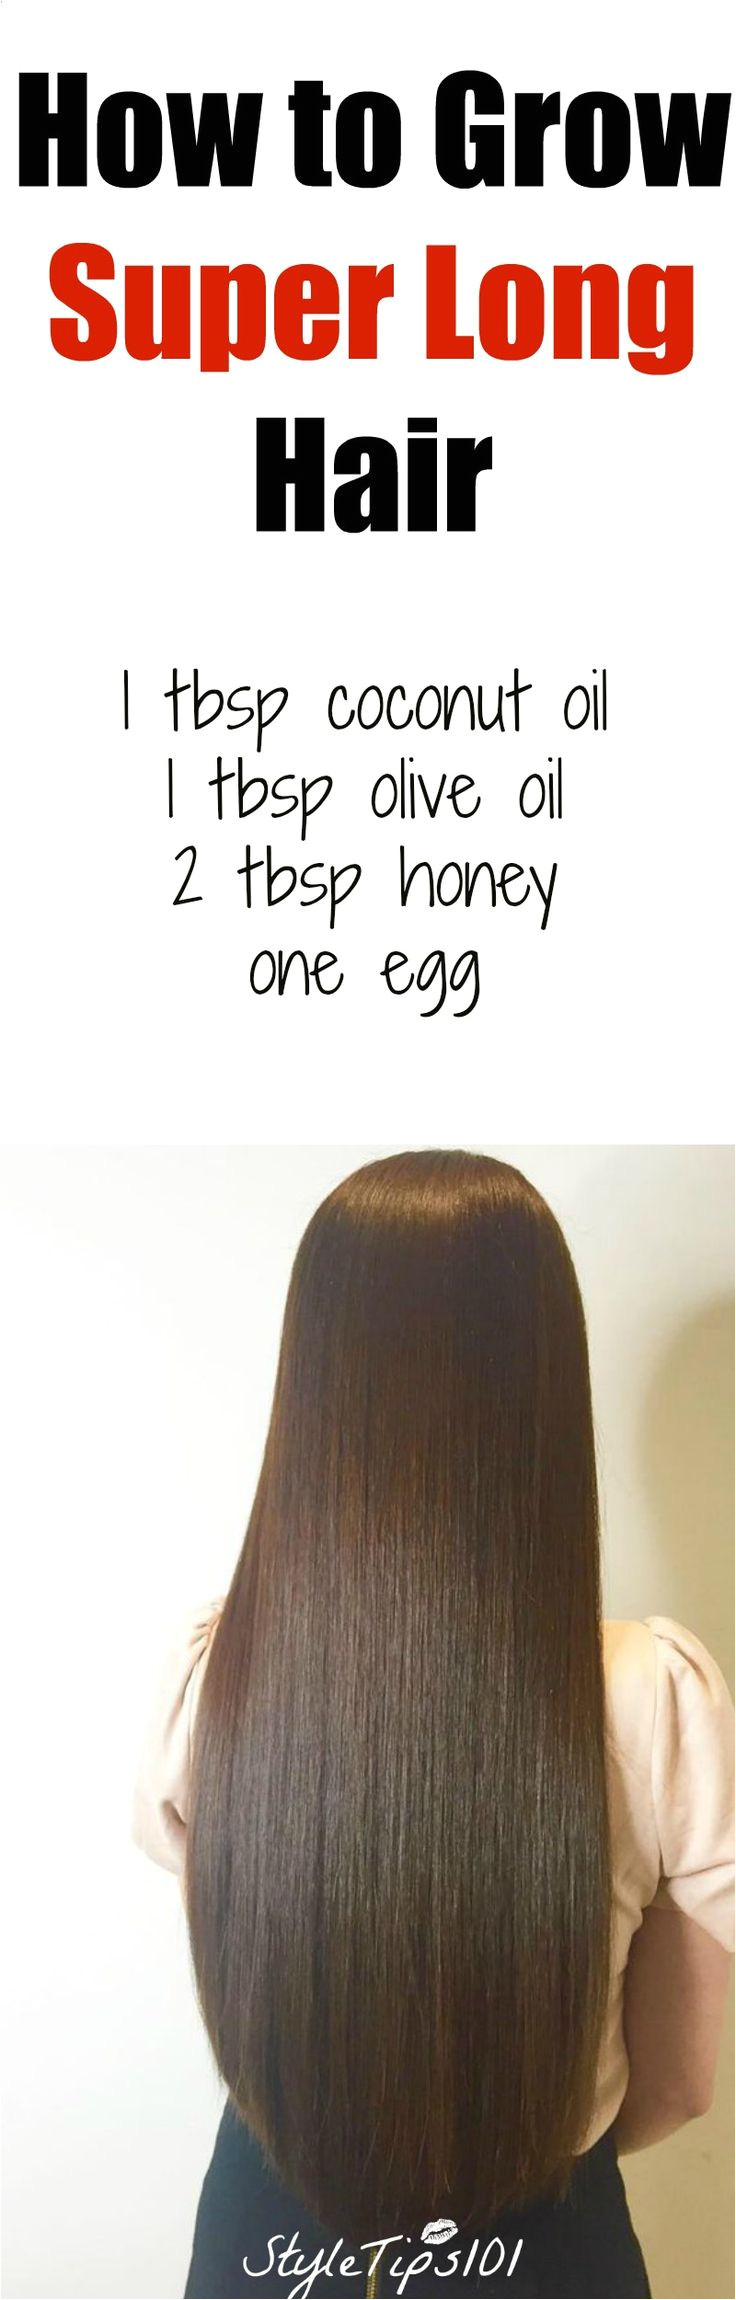 how to grow super long hair you ll need 1 tbsp coconut oil 1